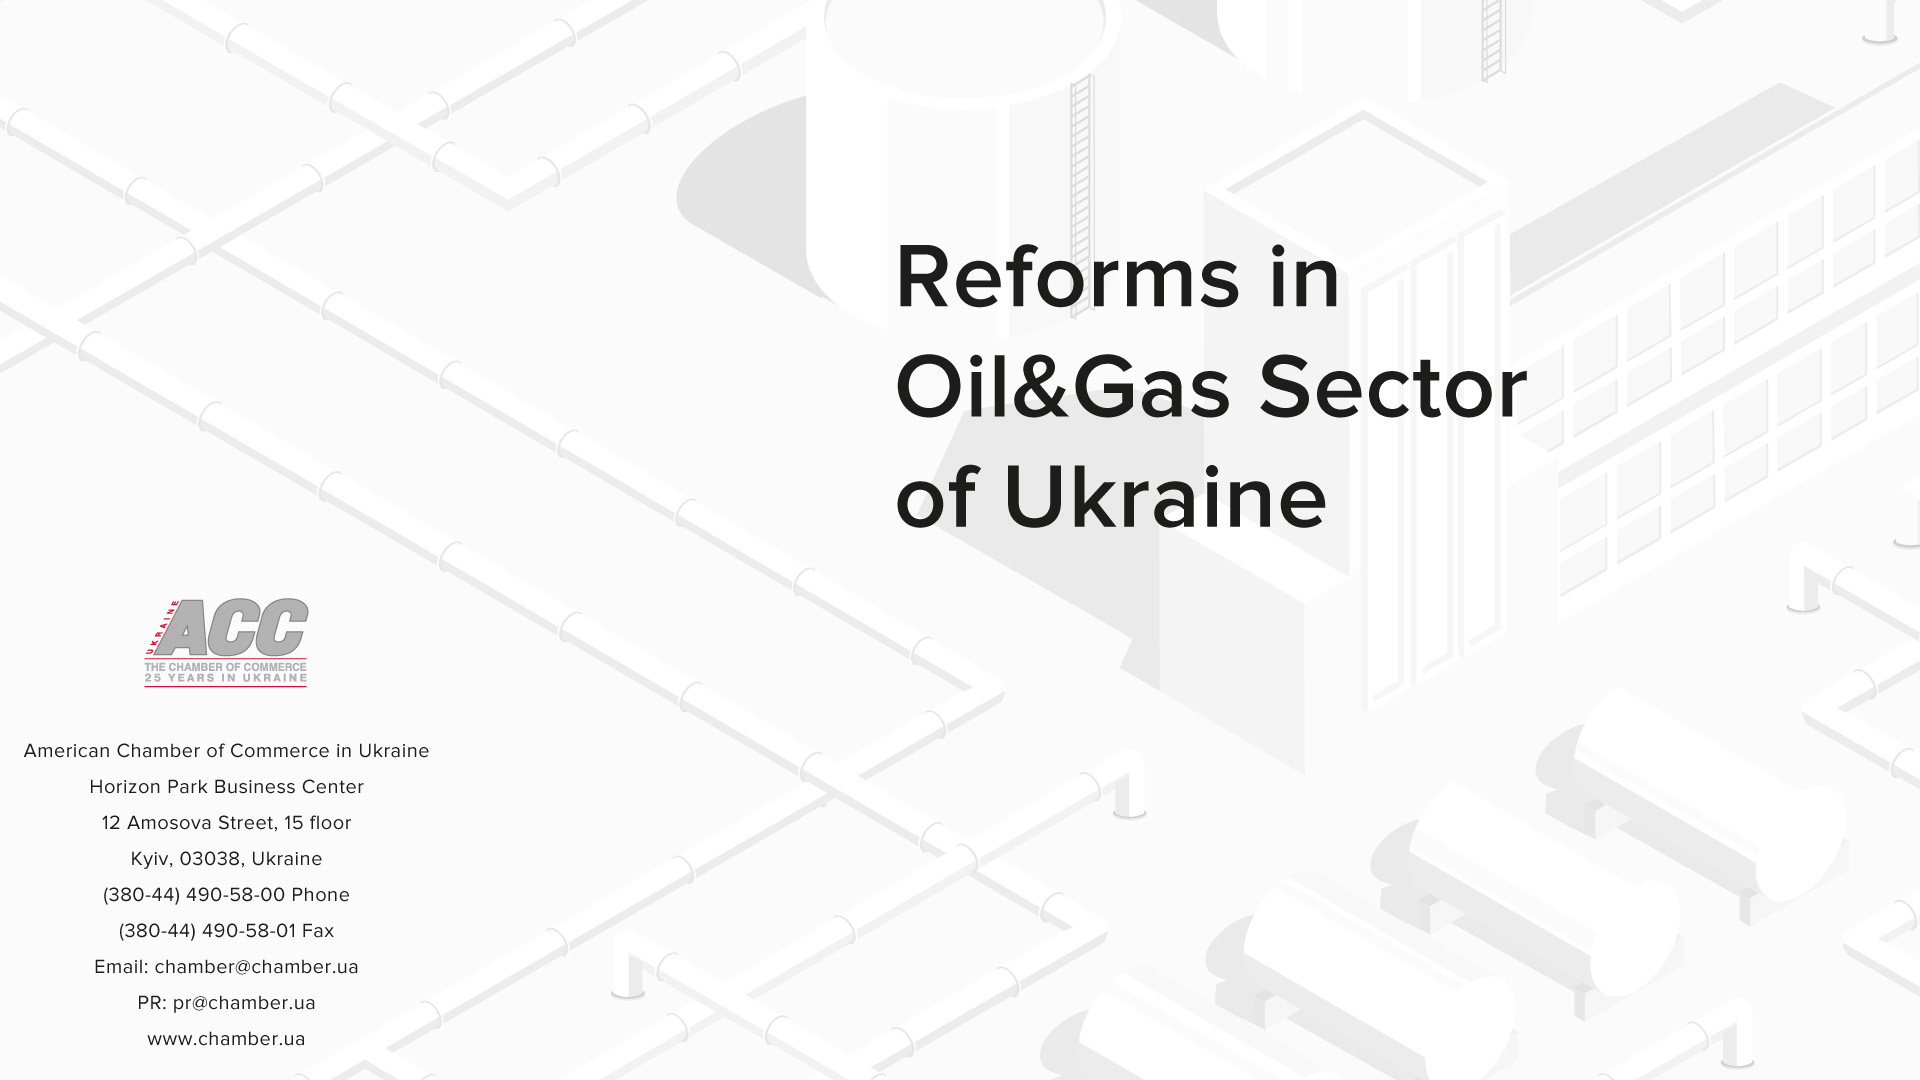 """Third Edition of the Chamber White Paper """"Reforms in Oil&Gas Sector of Ukraine"""""""